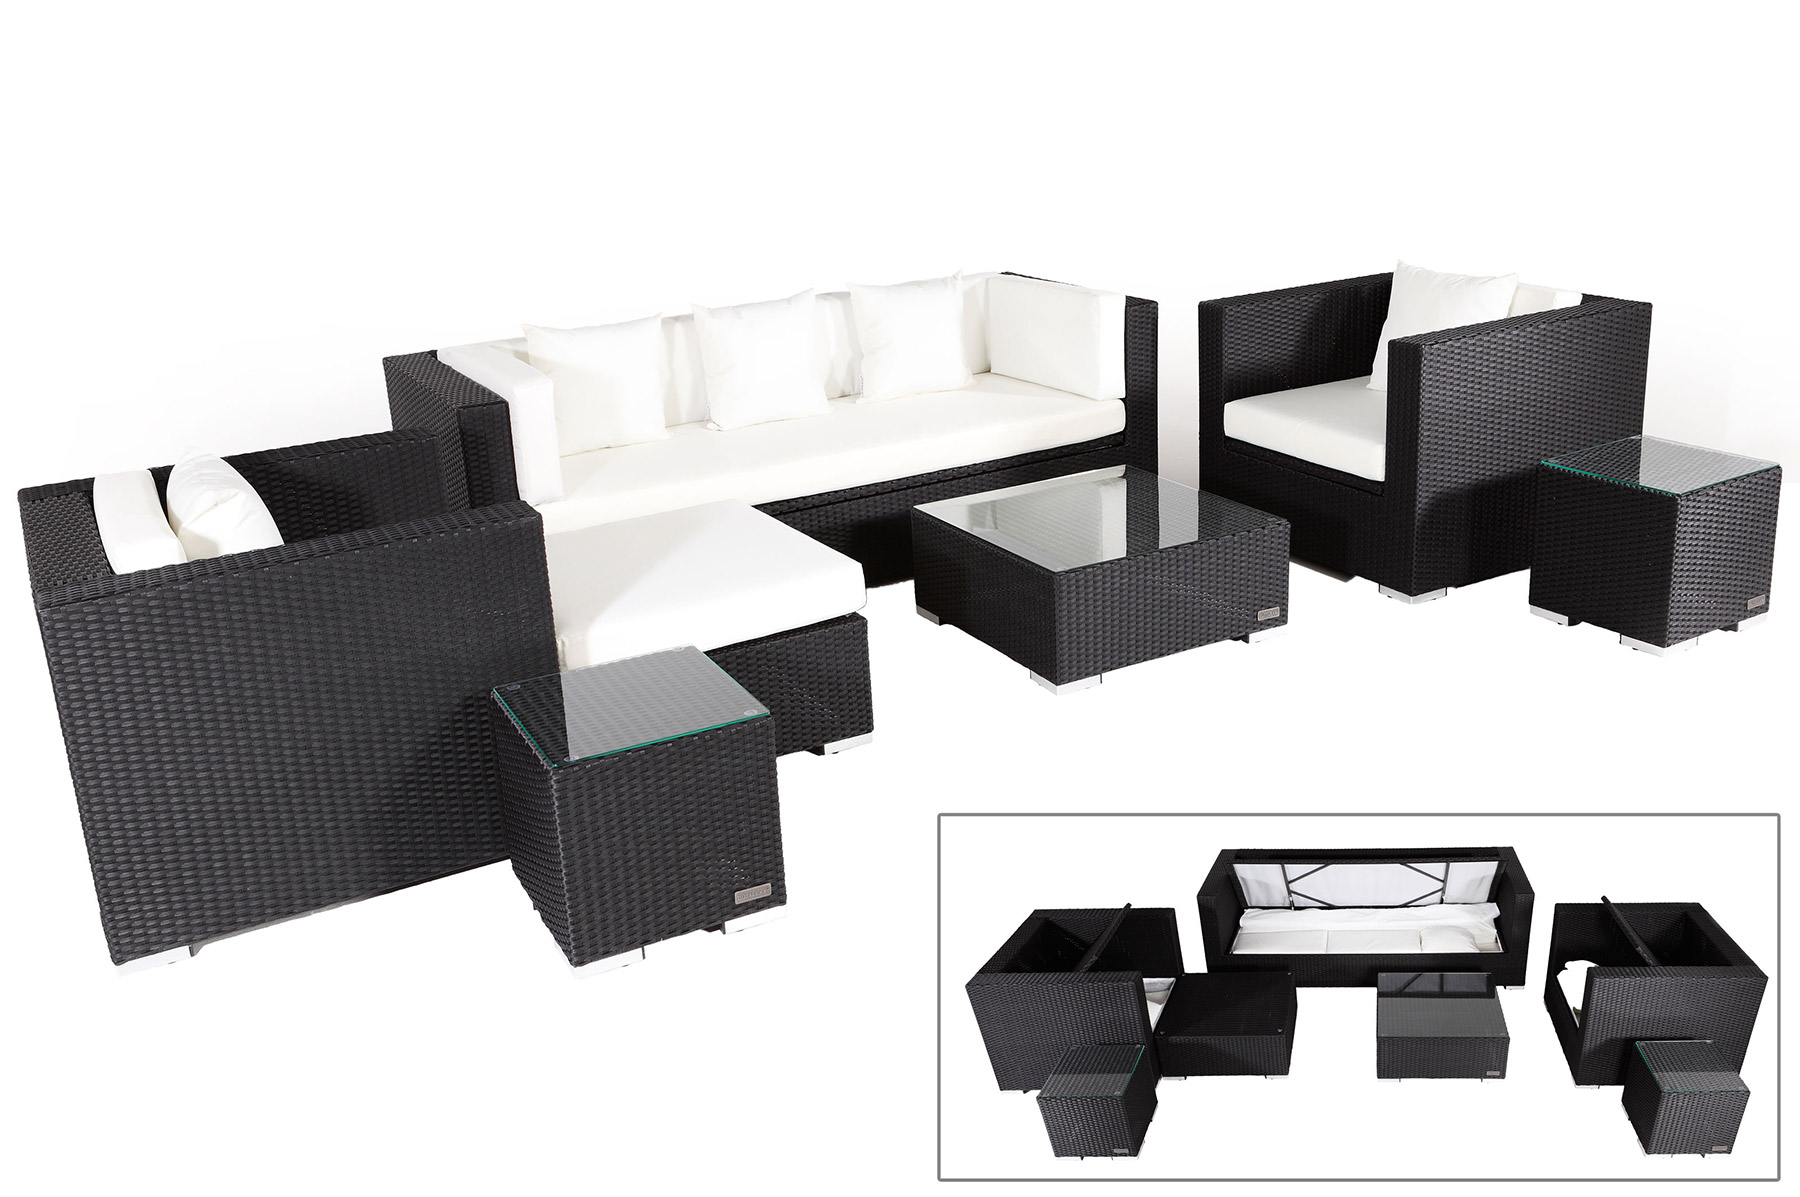 outflexx rattanm bel sitzgruppe aus polyrattan mit kissenboxfunktion inkl 2 hockern. Black Bedroom Furniture Sets. Home Design Ideas